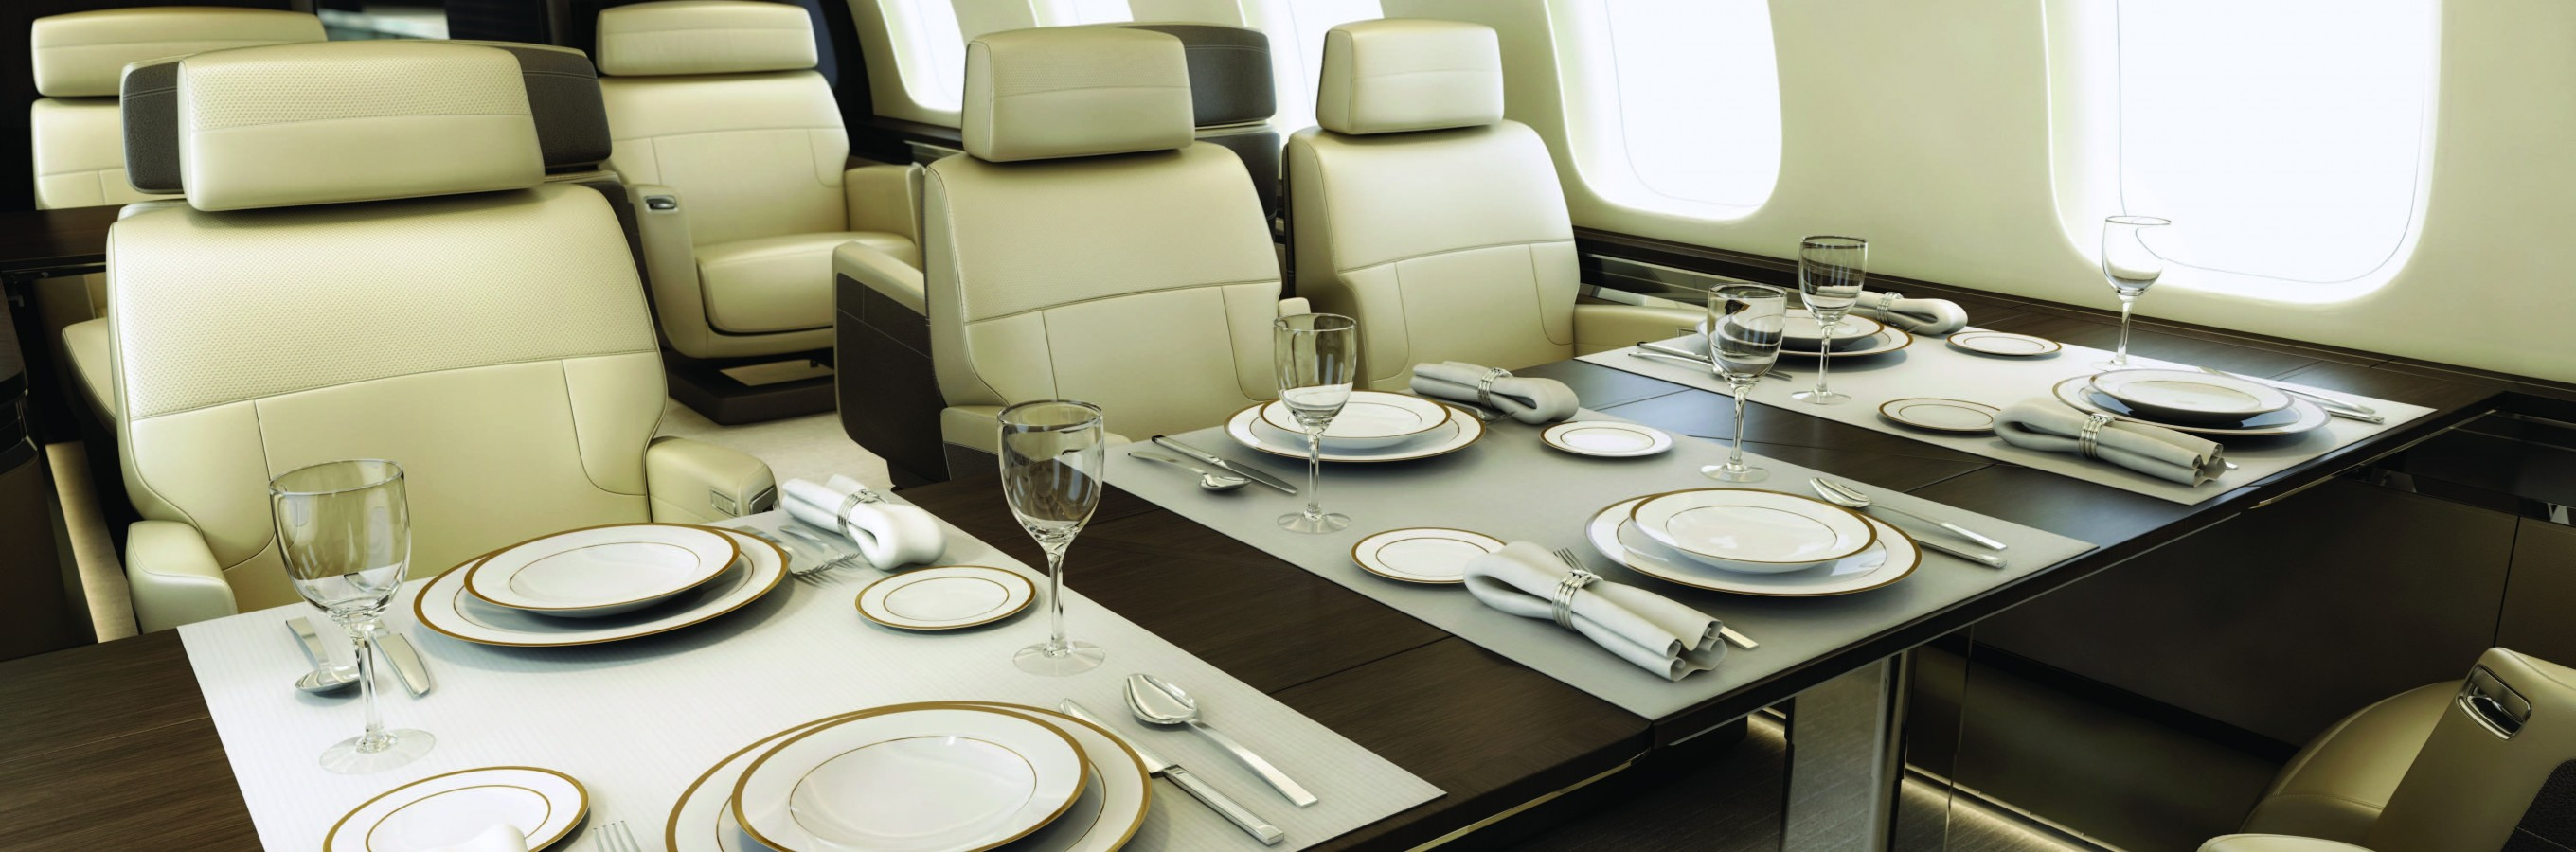 global-7500-private-jet-dining-table